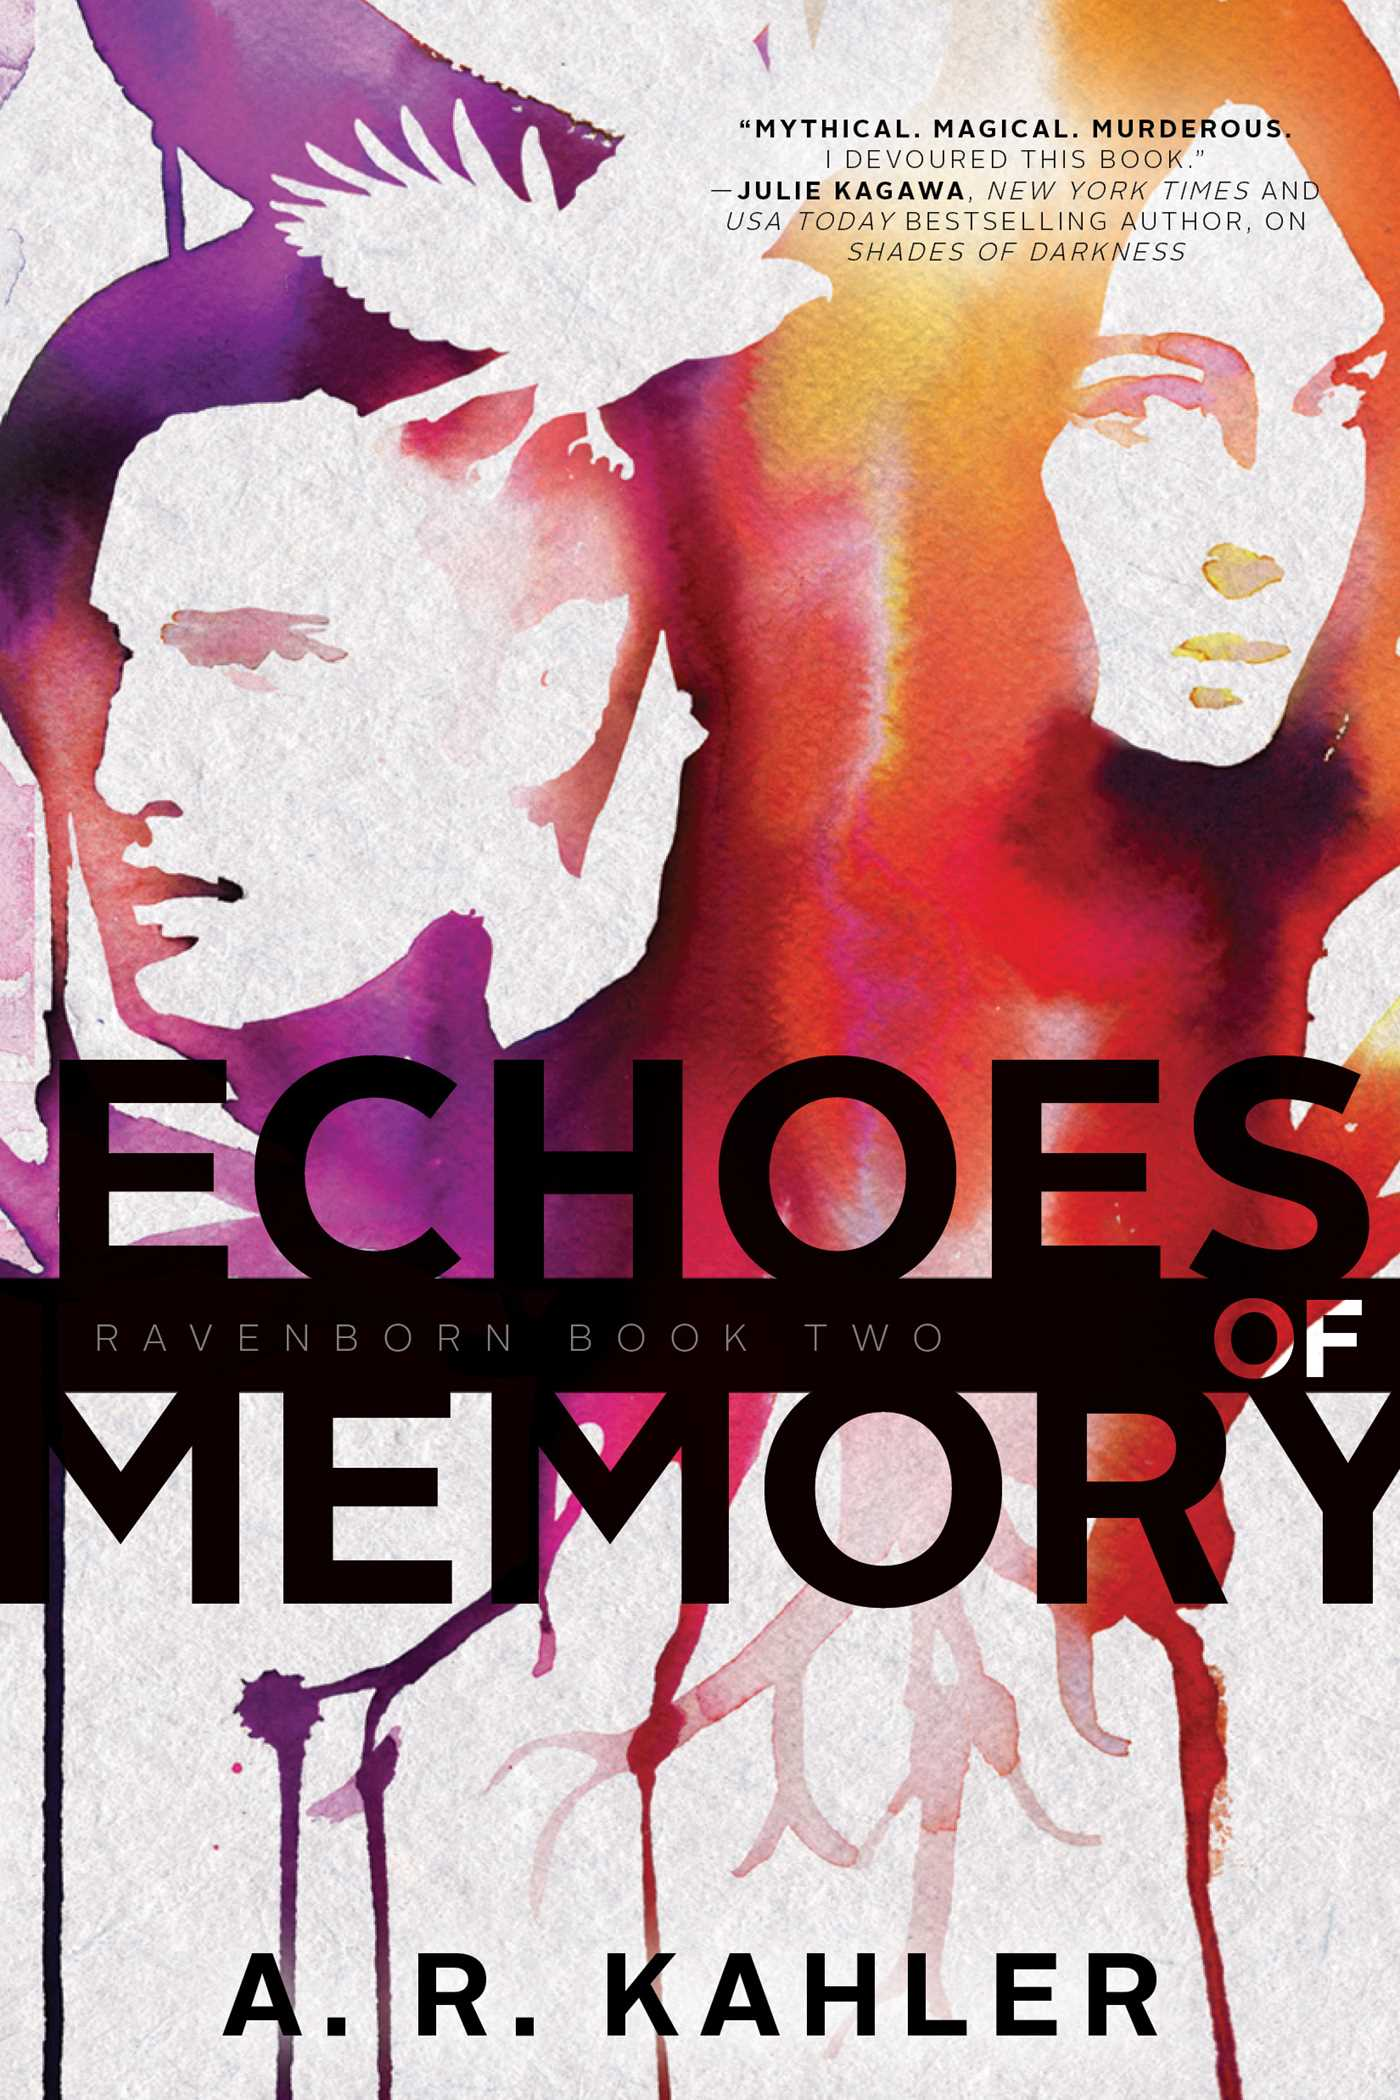 Echoes of memory 9781481432610 hr